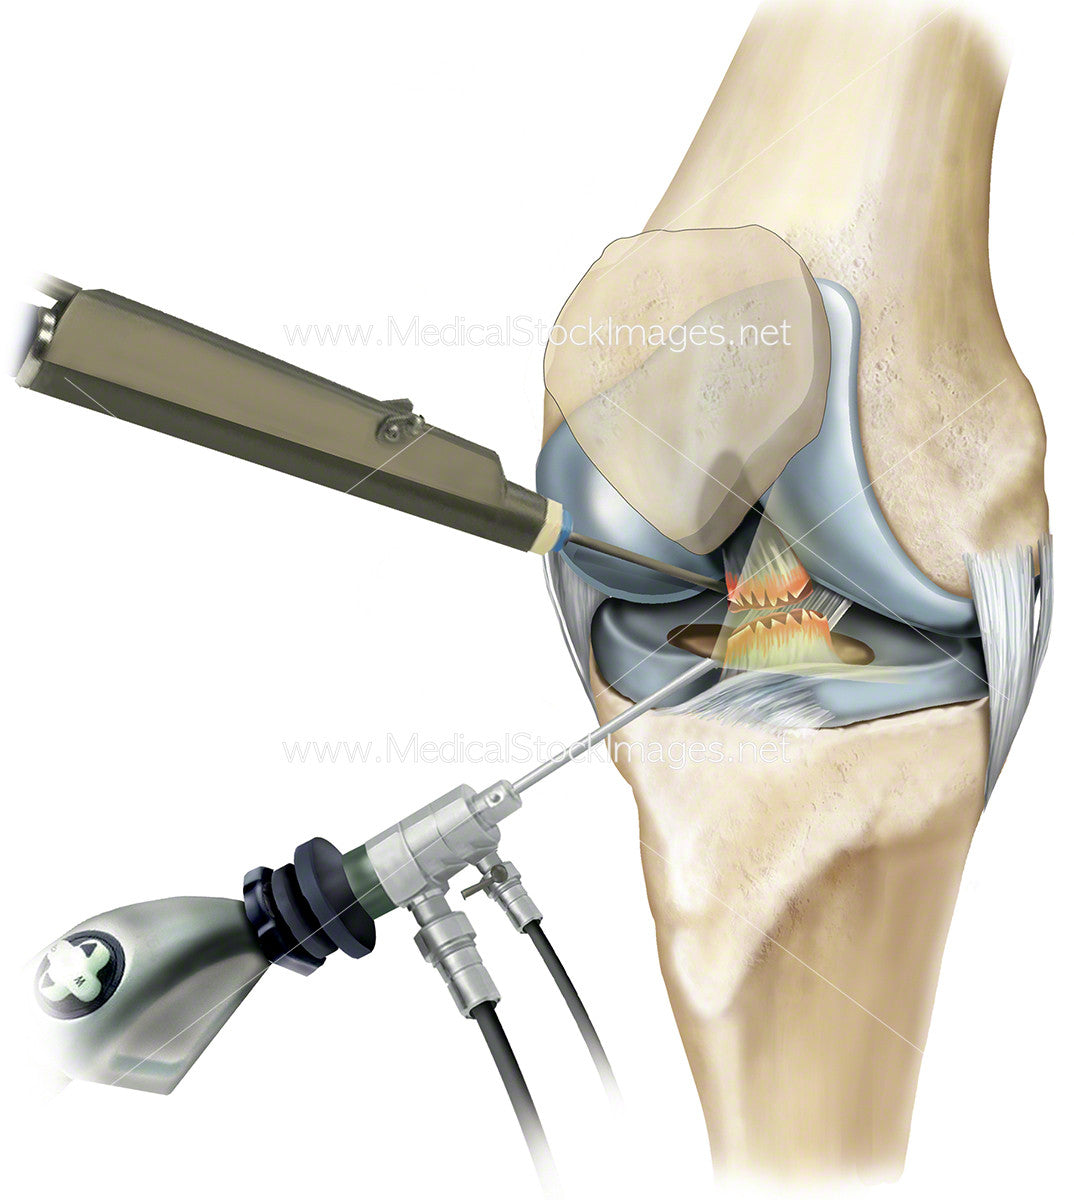 Arthroscopy of the Knee Joint – Medical Stock Images Company